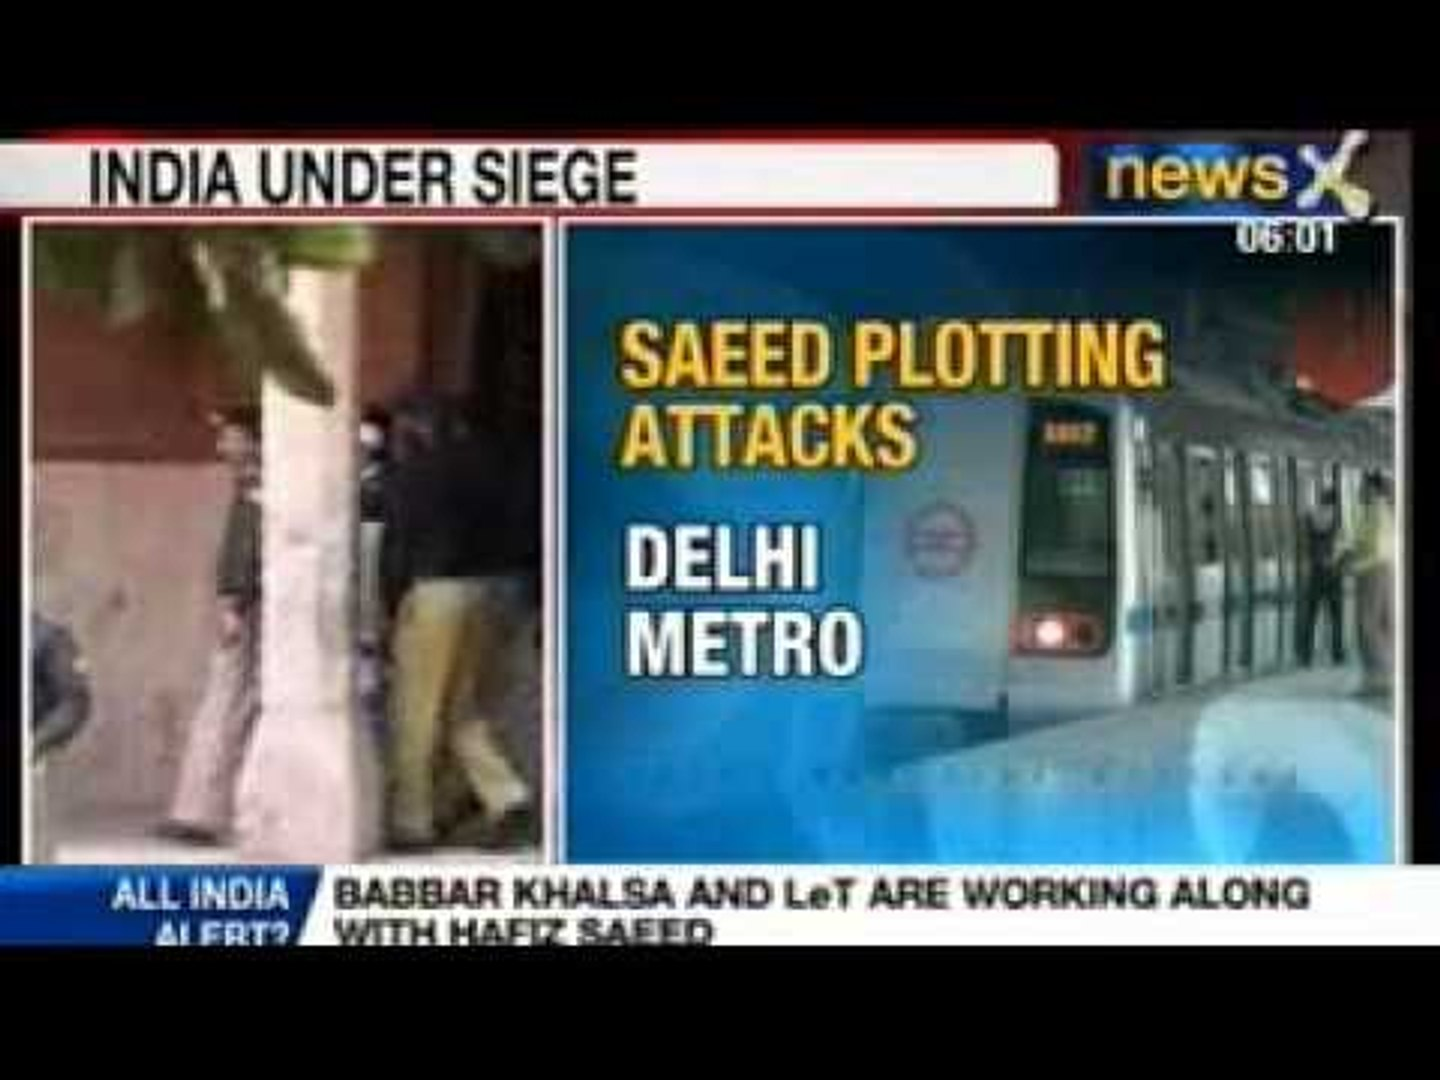 News X: Terror alert in India, terrorist eye south India